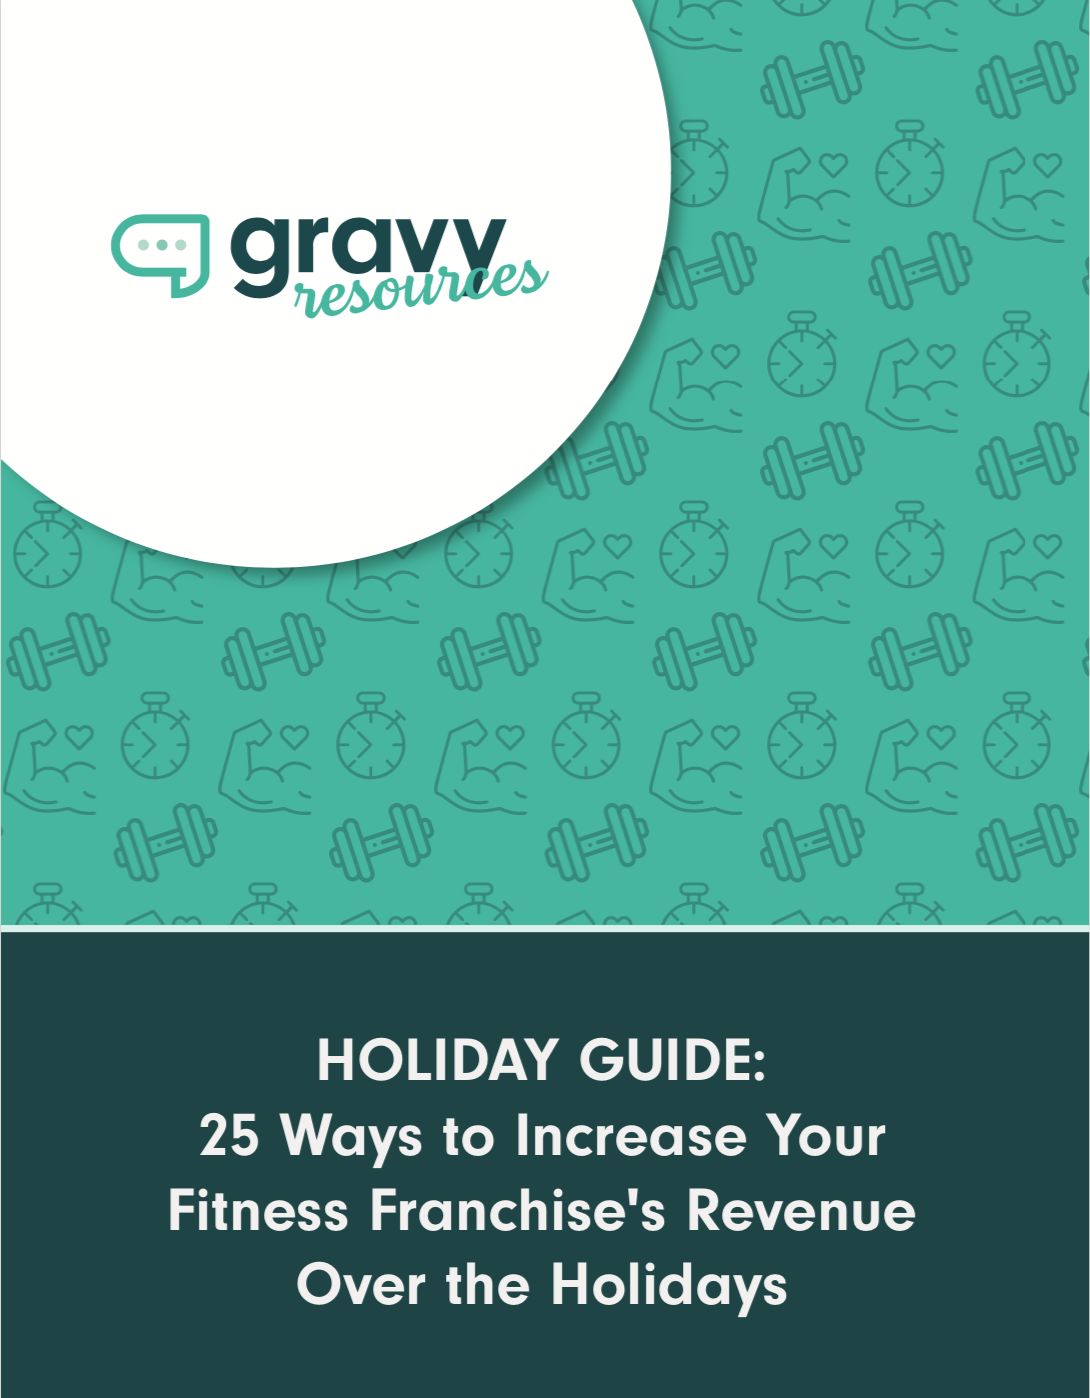 Gravy Holiday Fitness Franchise Guide